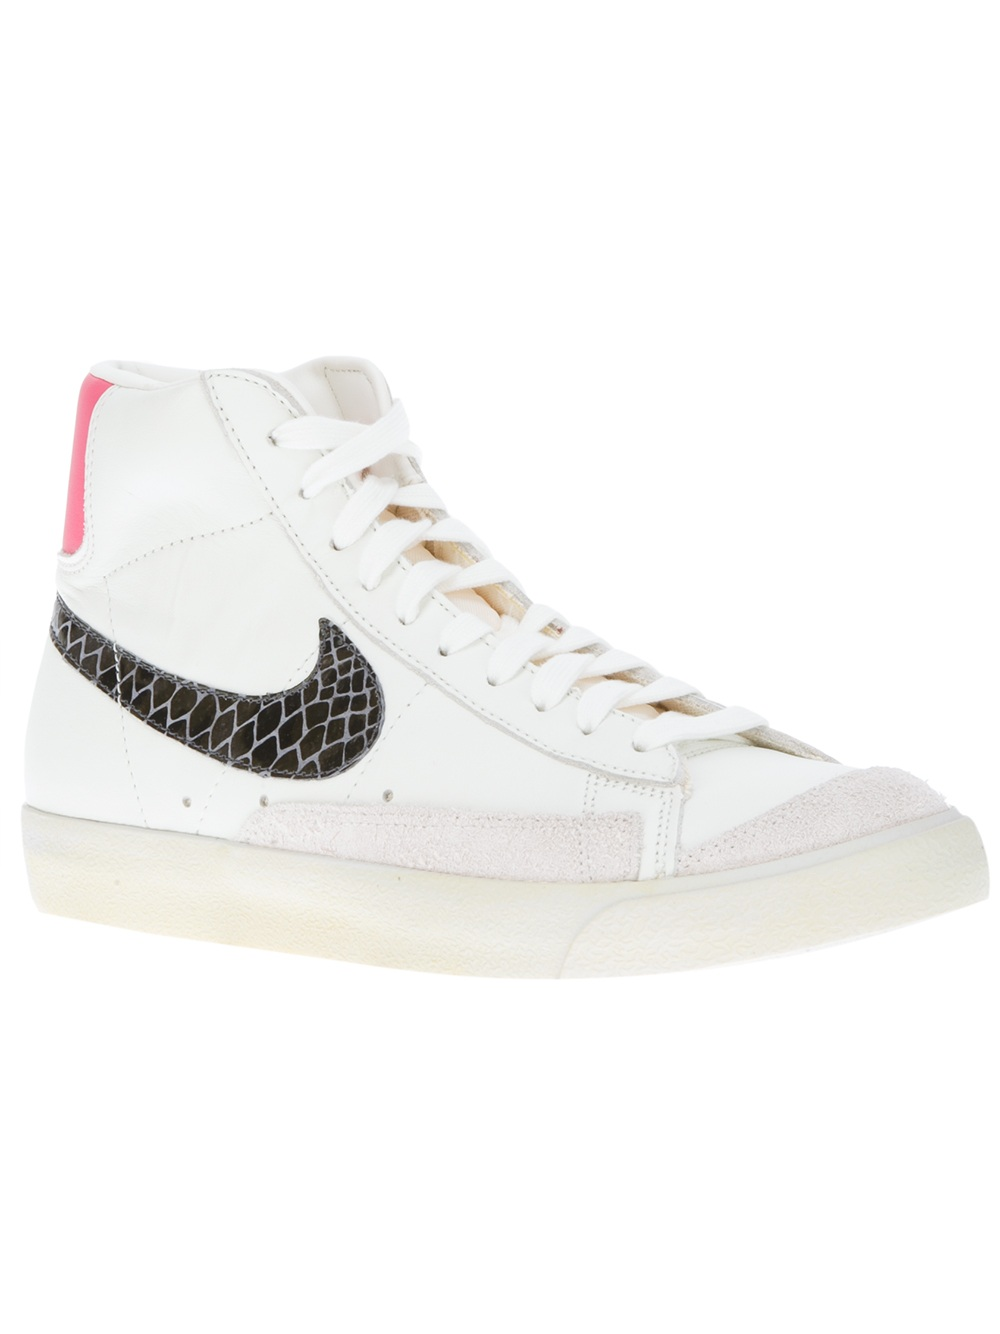 77 Best Images About Cartomancy On Pinterest: Nike Blazer Mid 77 Hi Top Sneaker In White